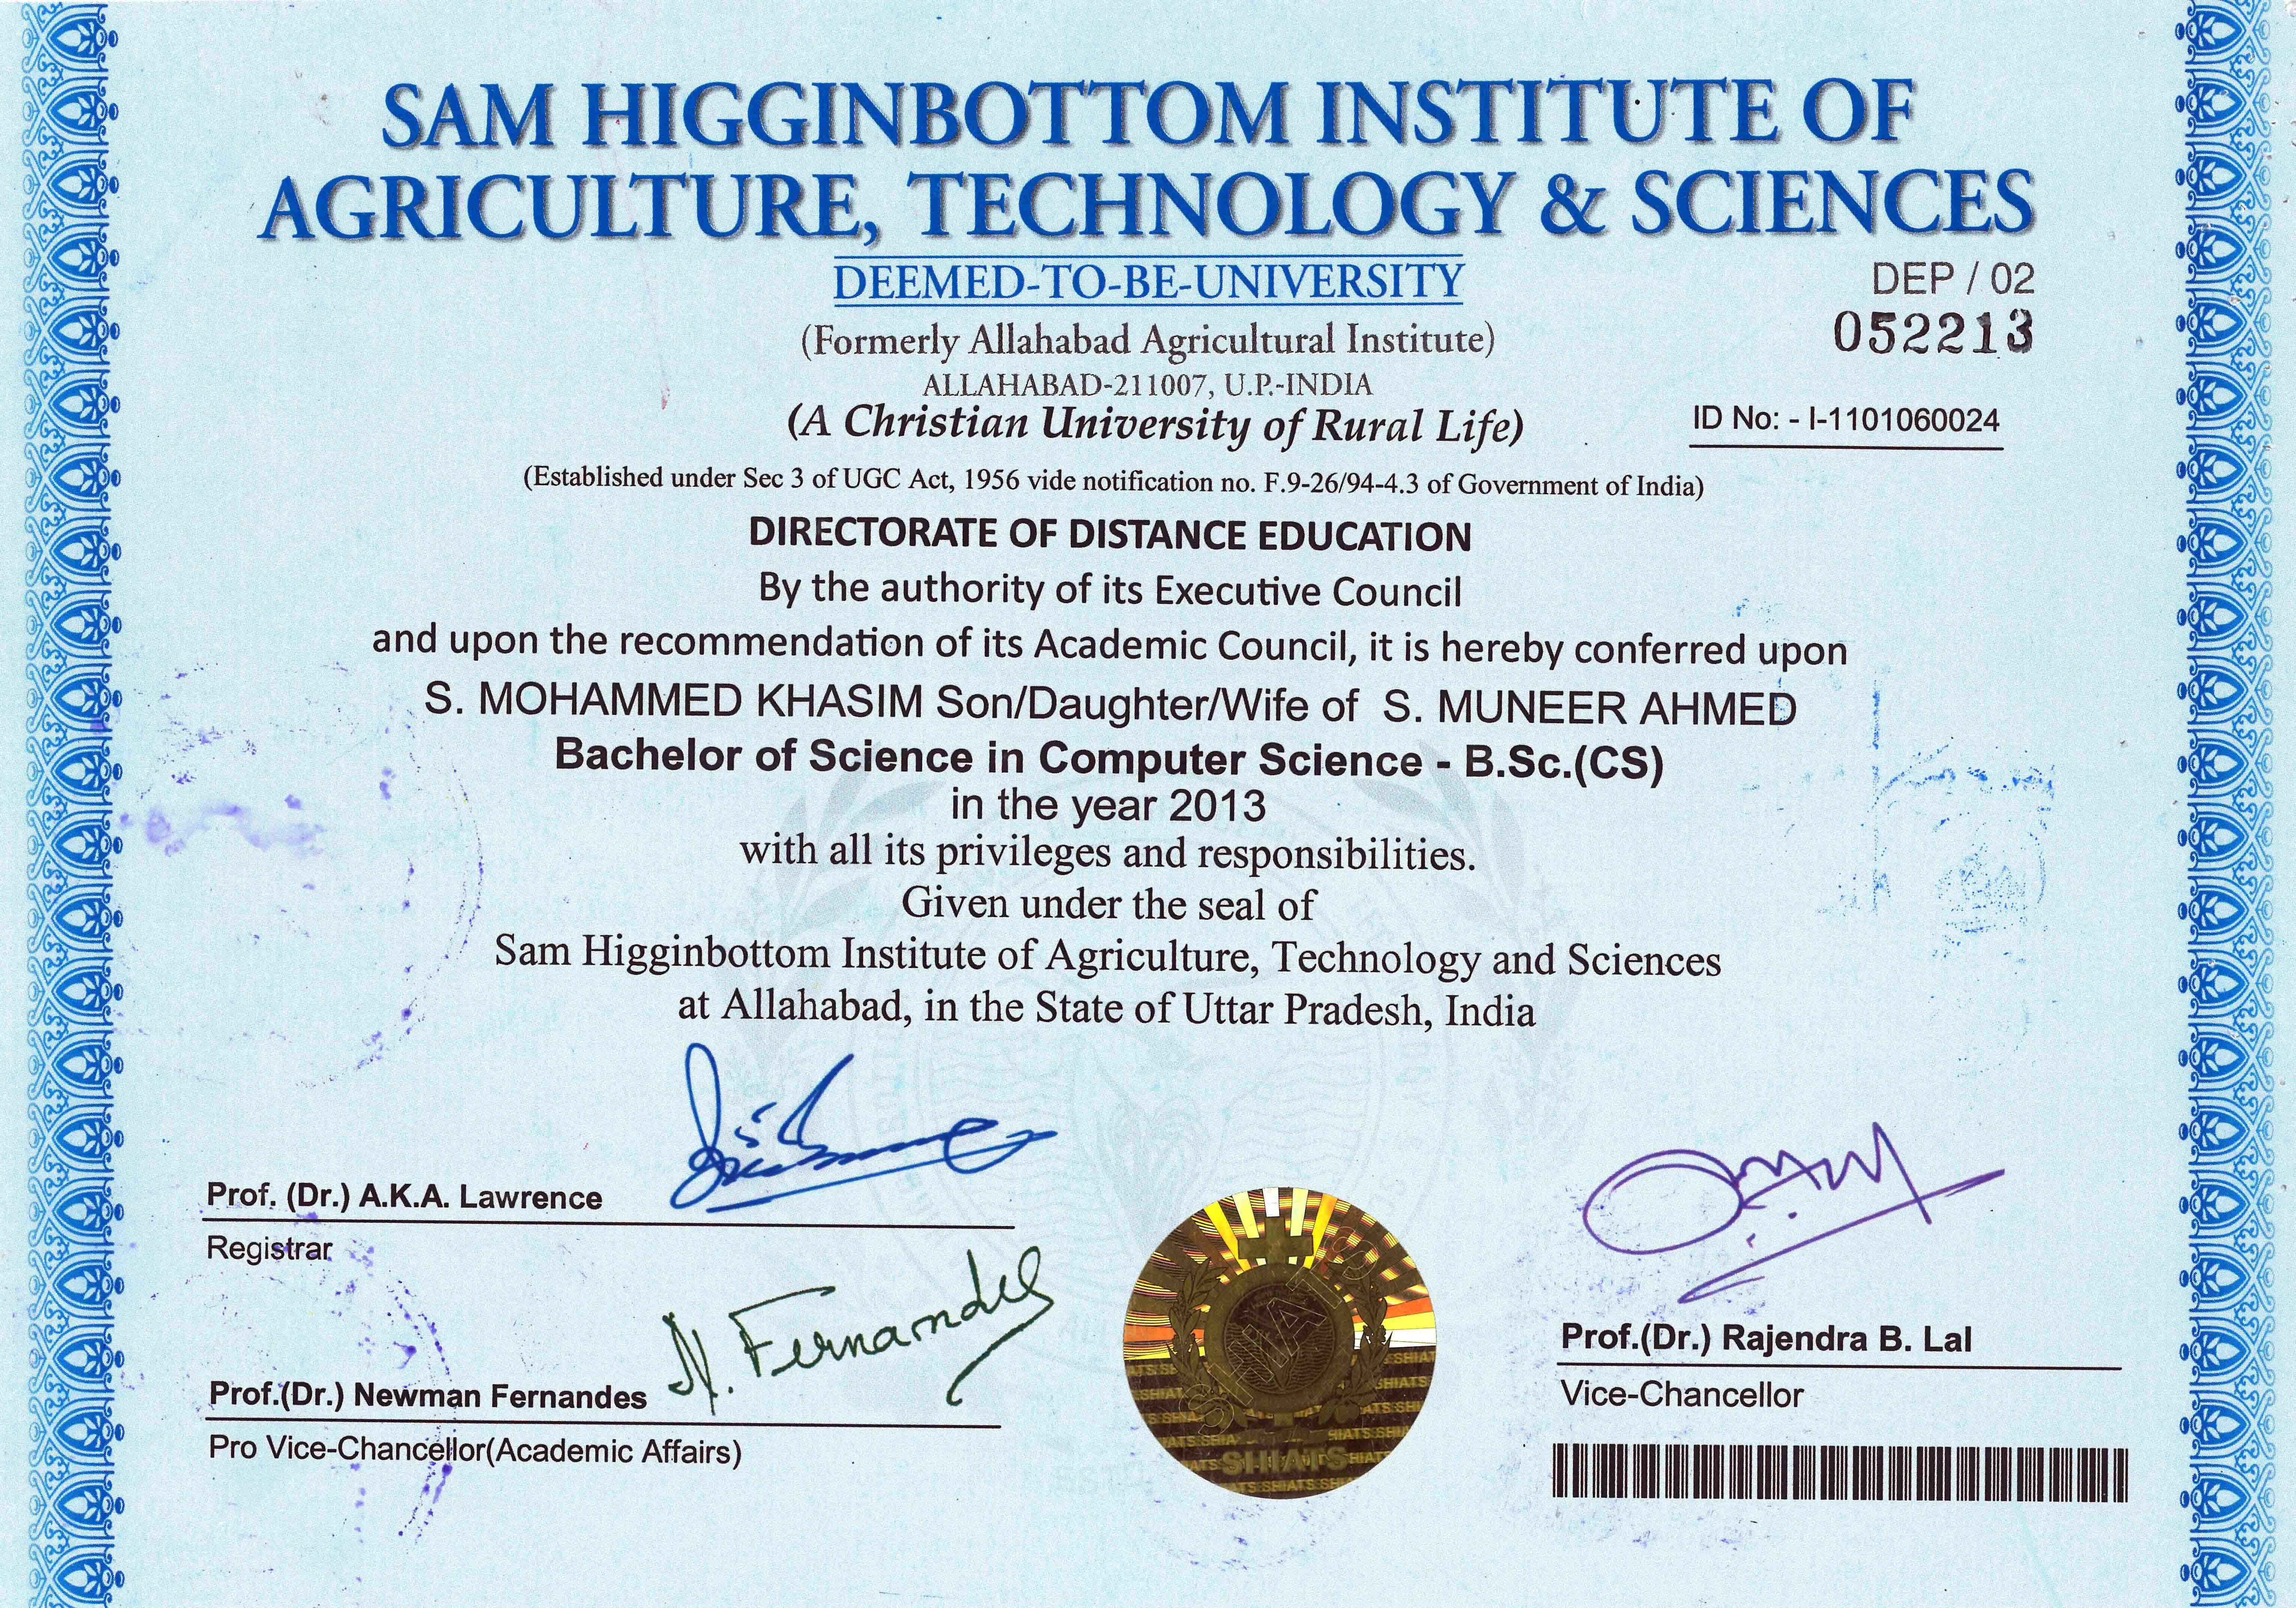 Mohammed khasim shaik bayt sam higginbottom institute of agriculture technology sciences formerly allahbad agricultural institute bcs bachelor of science in computer science xflitez Gallery